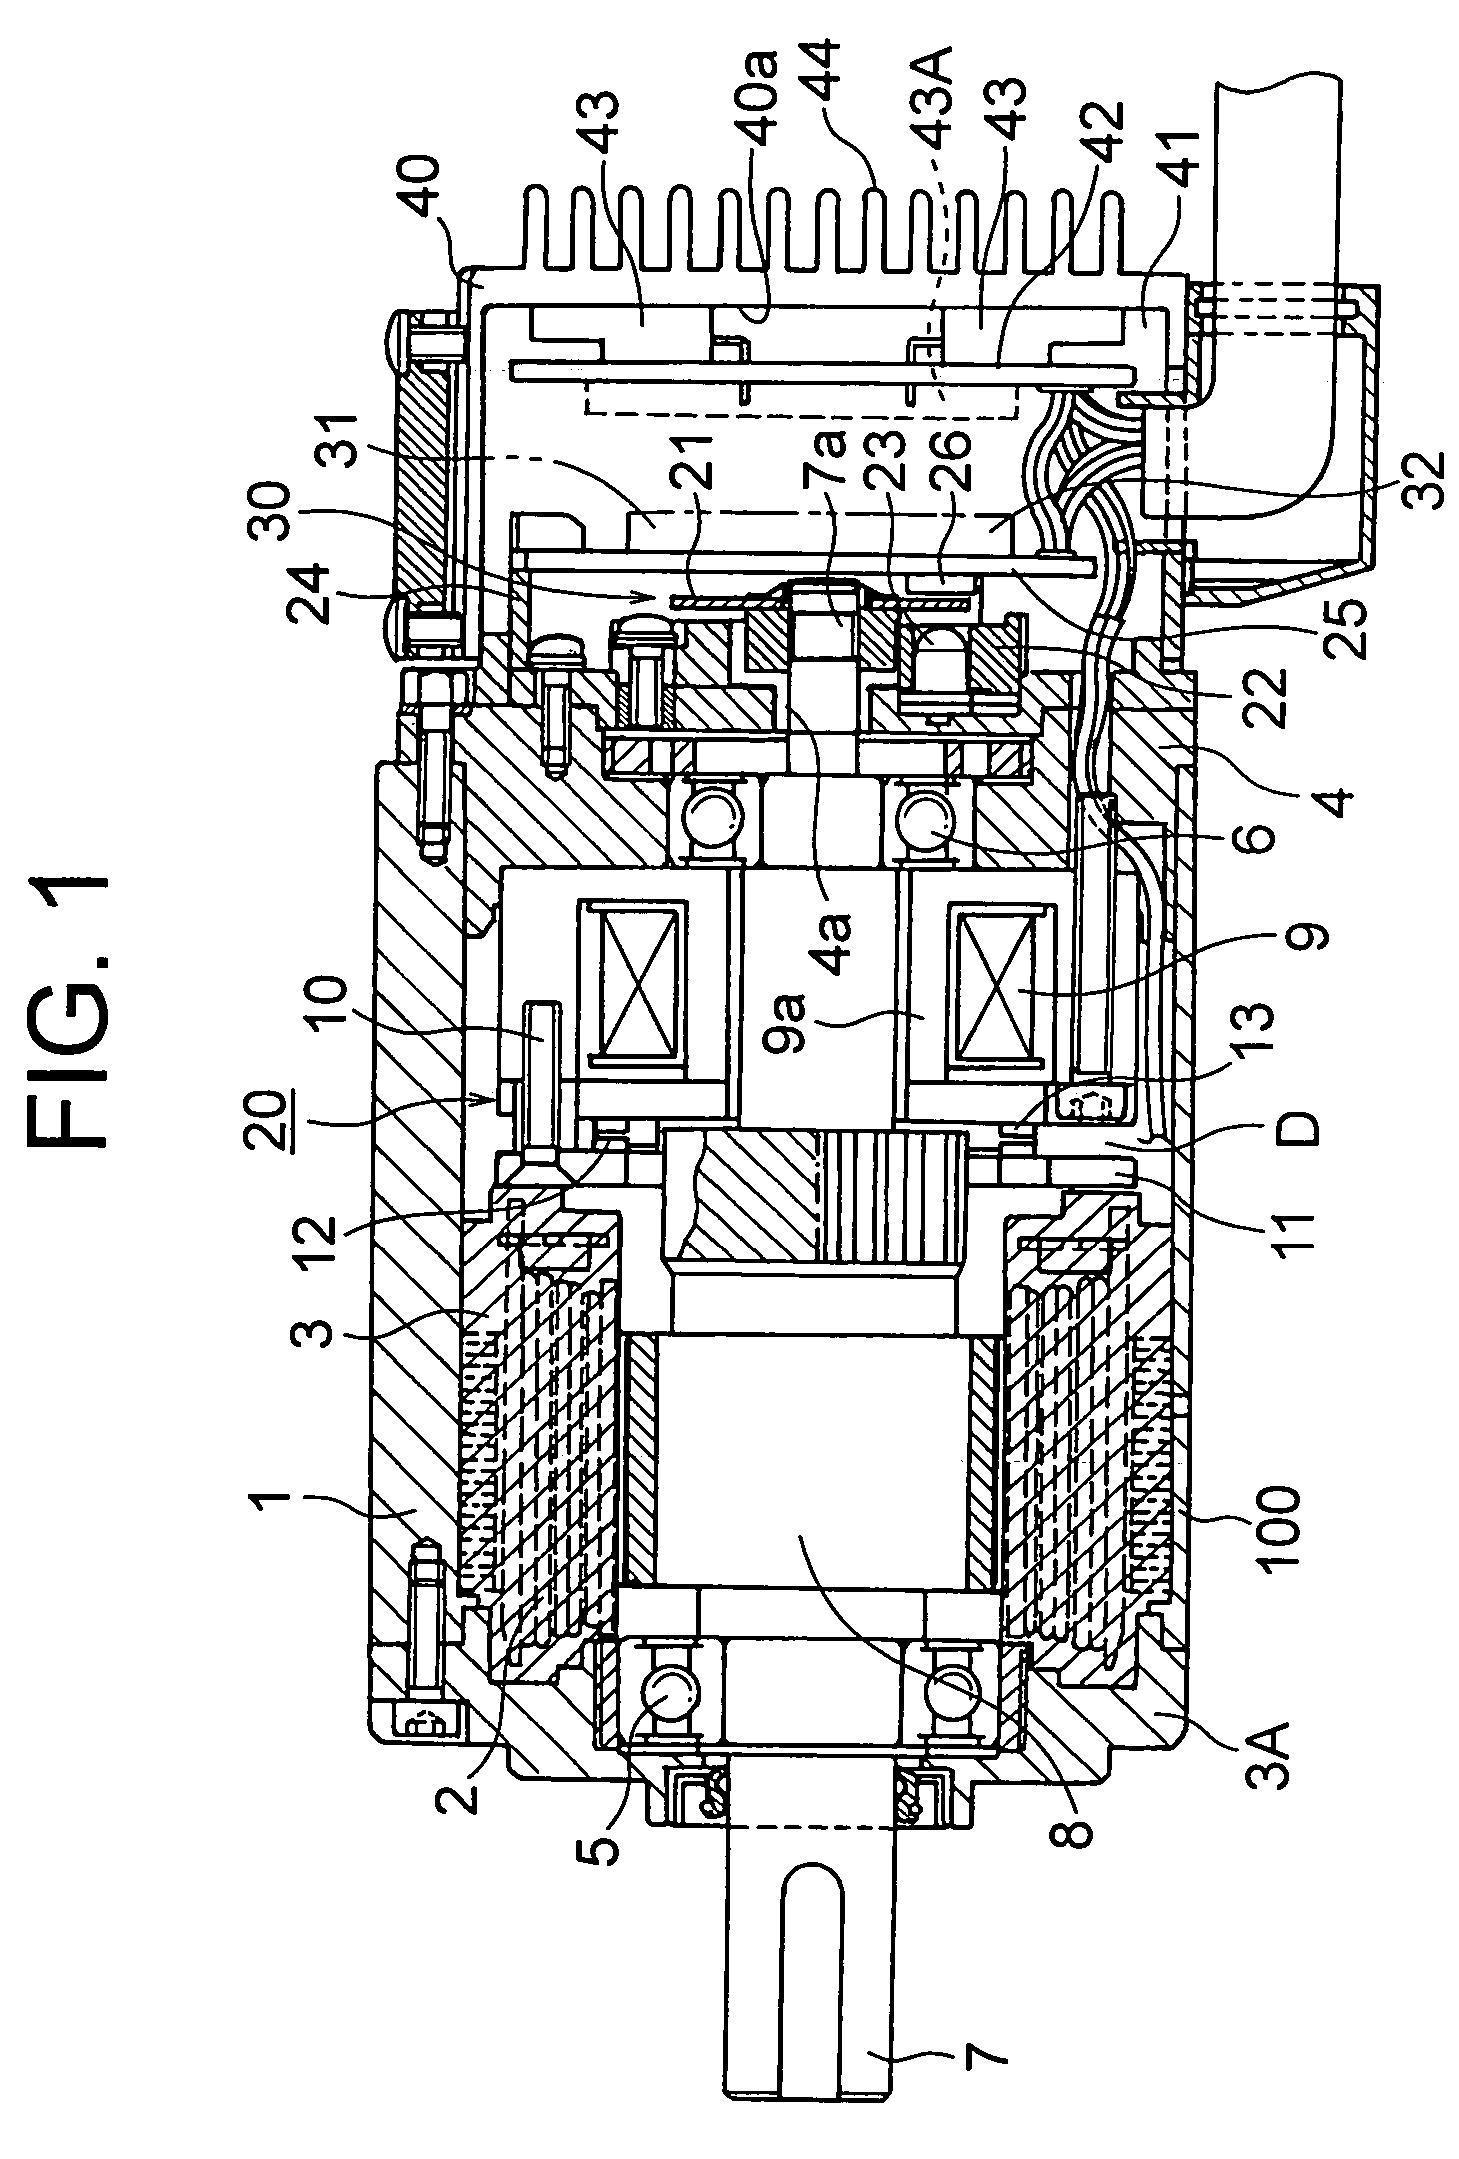 patent us7042188 - servo motor with a built-in drive circuit